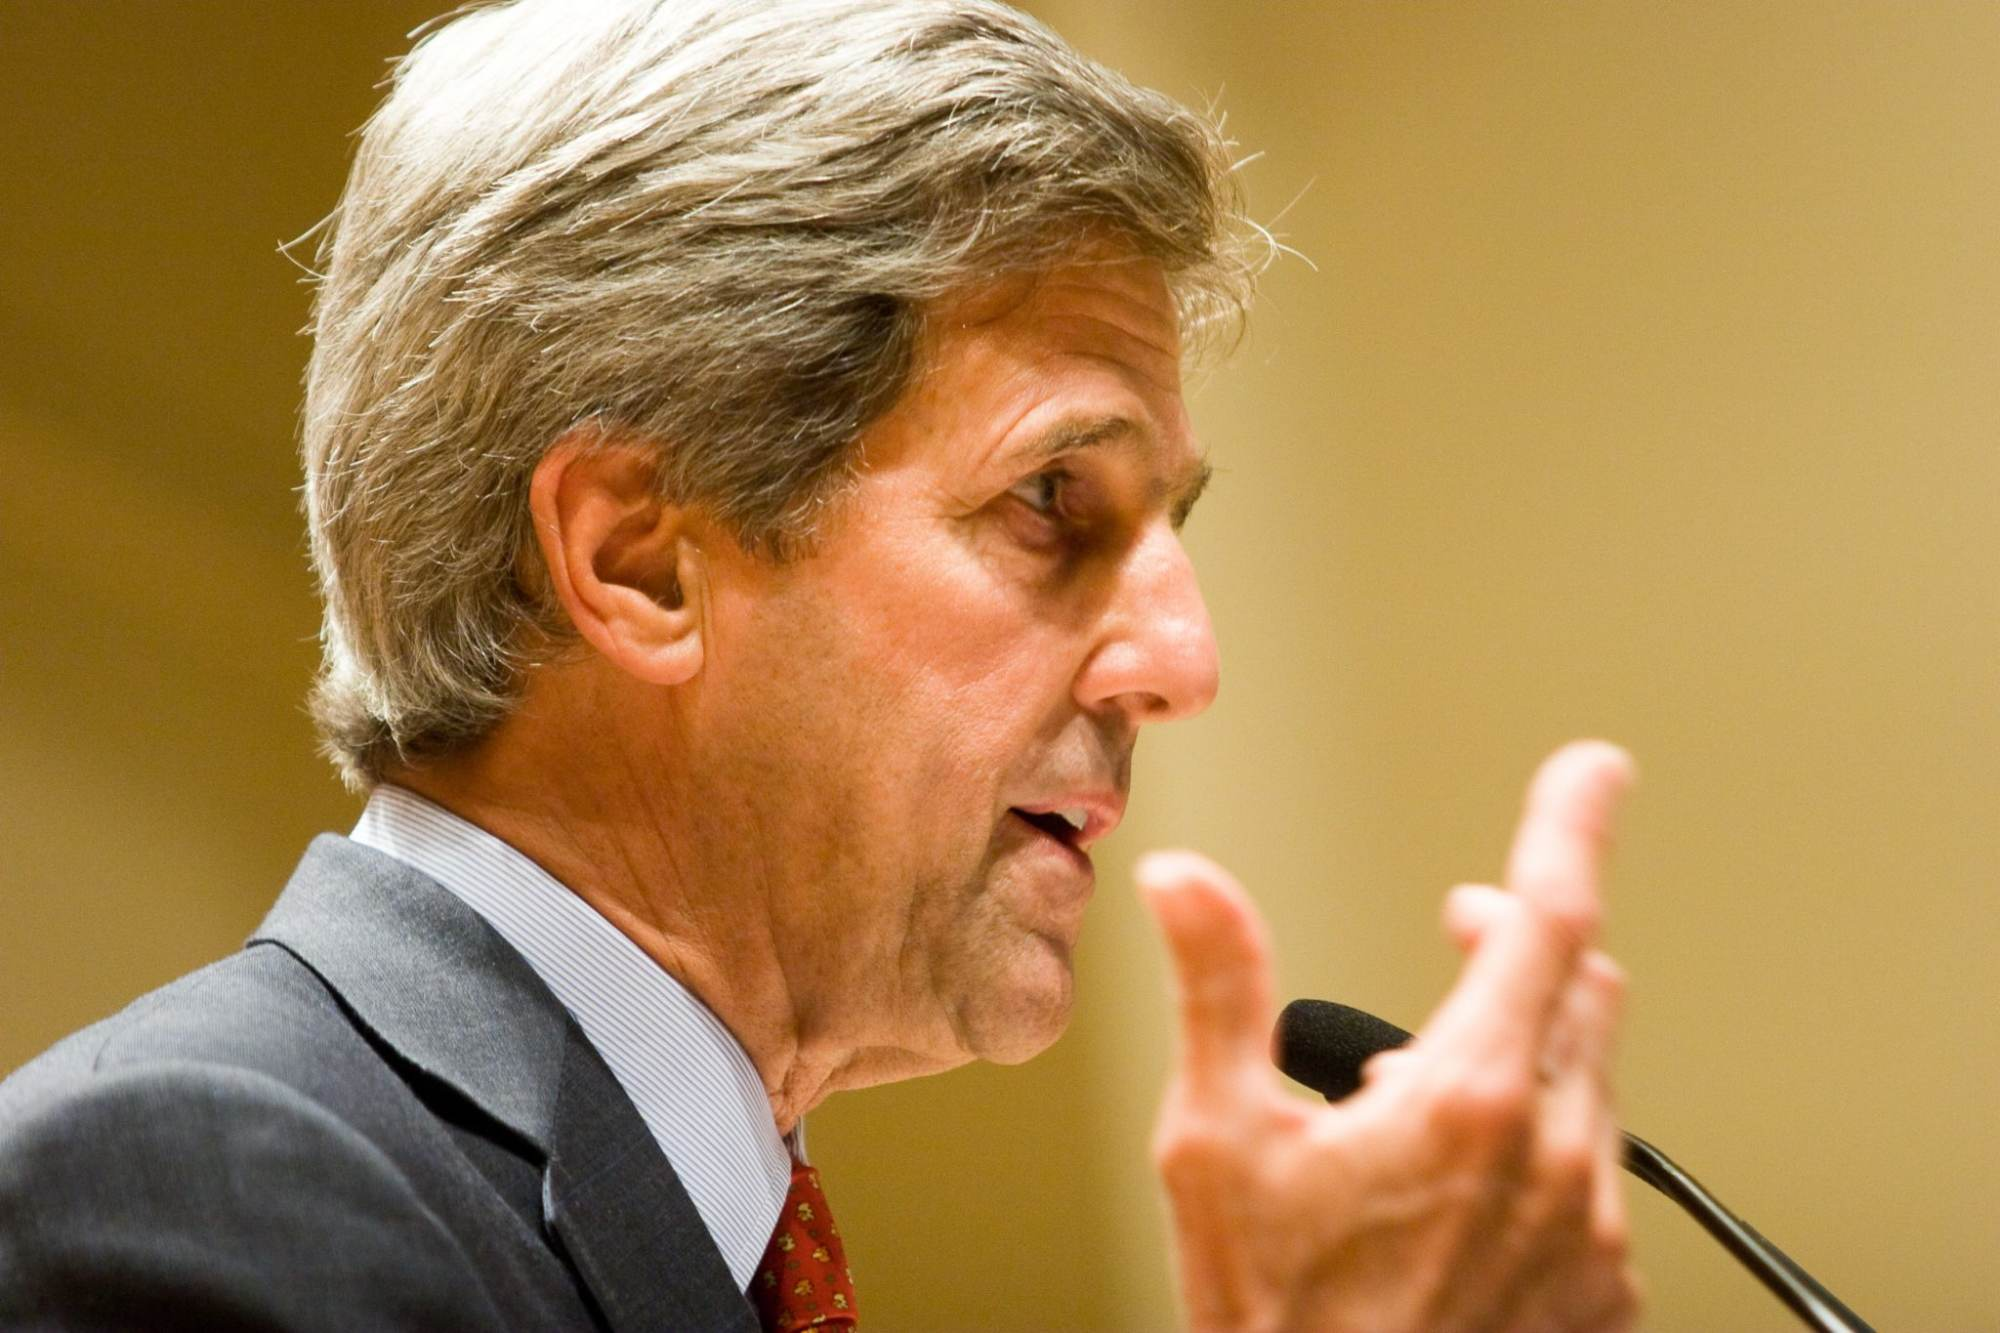 Kerry Concerned About Size of Dem Primary Field: 'I Don't Think This Is Helpful'